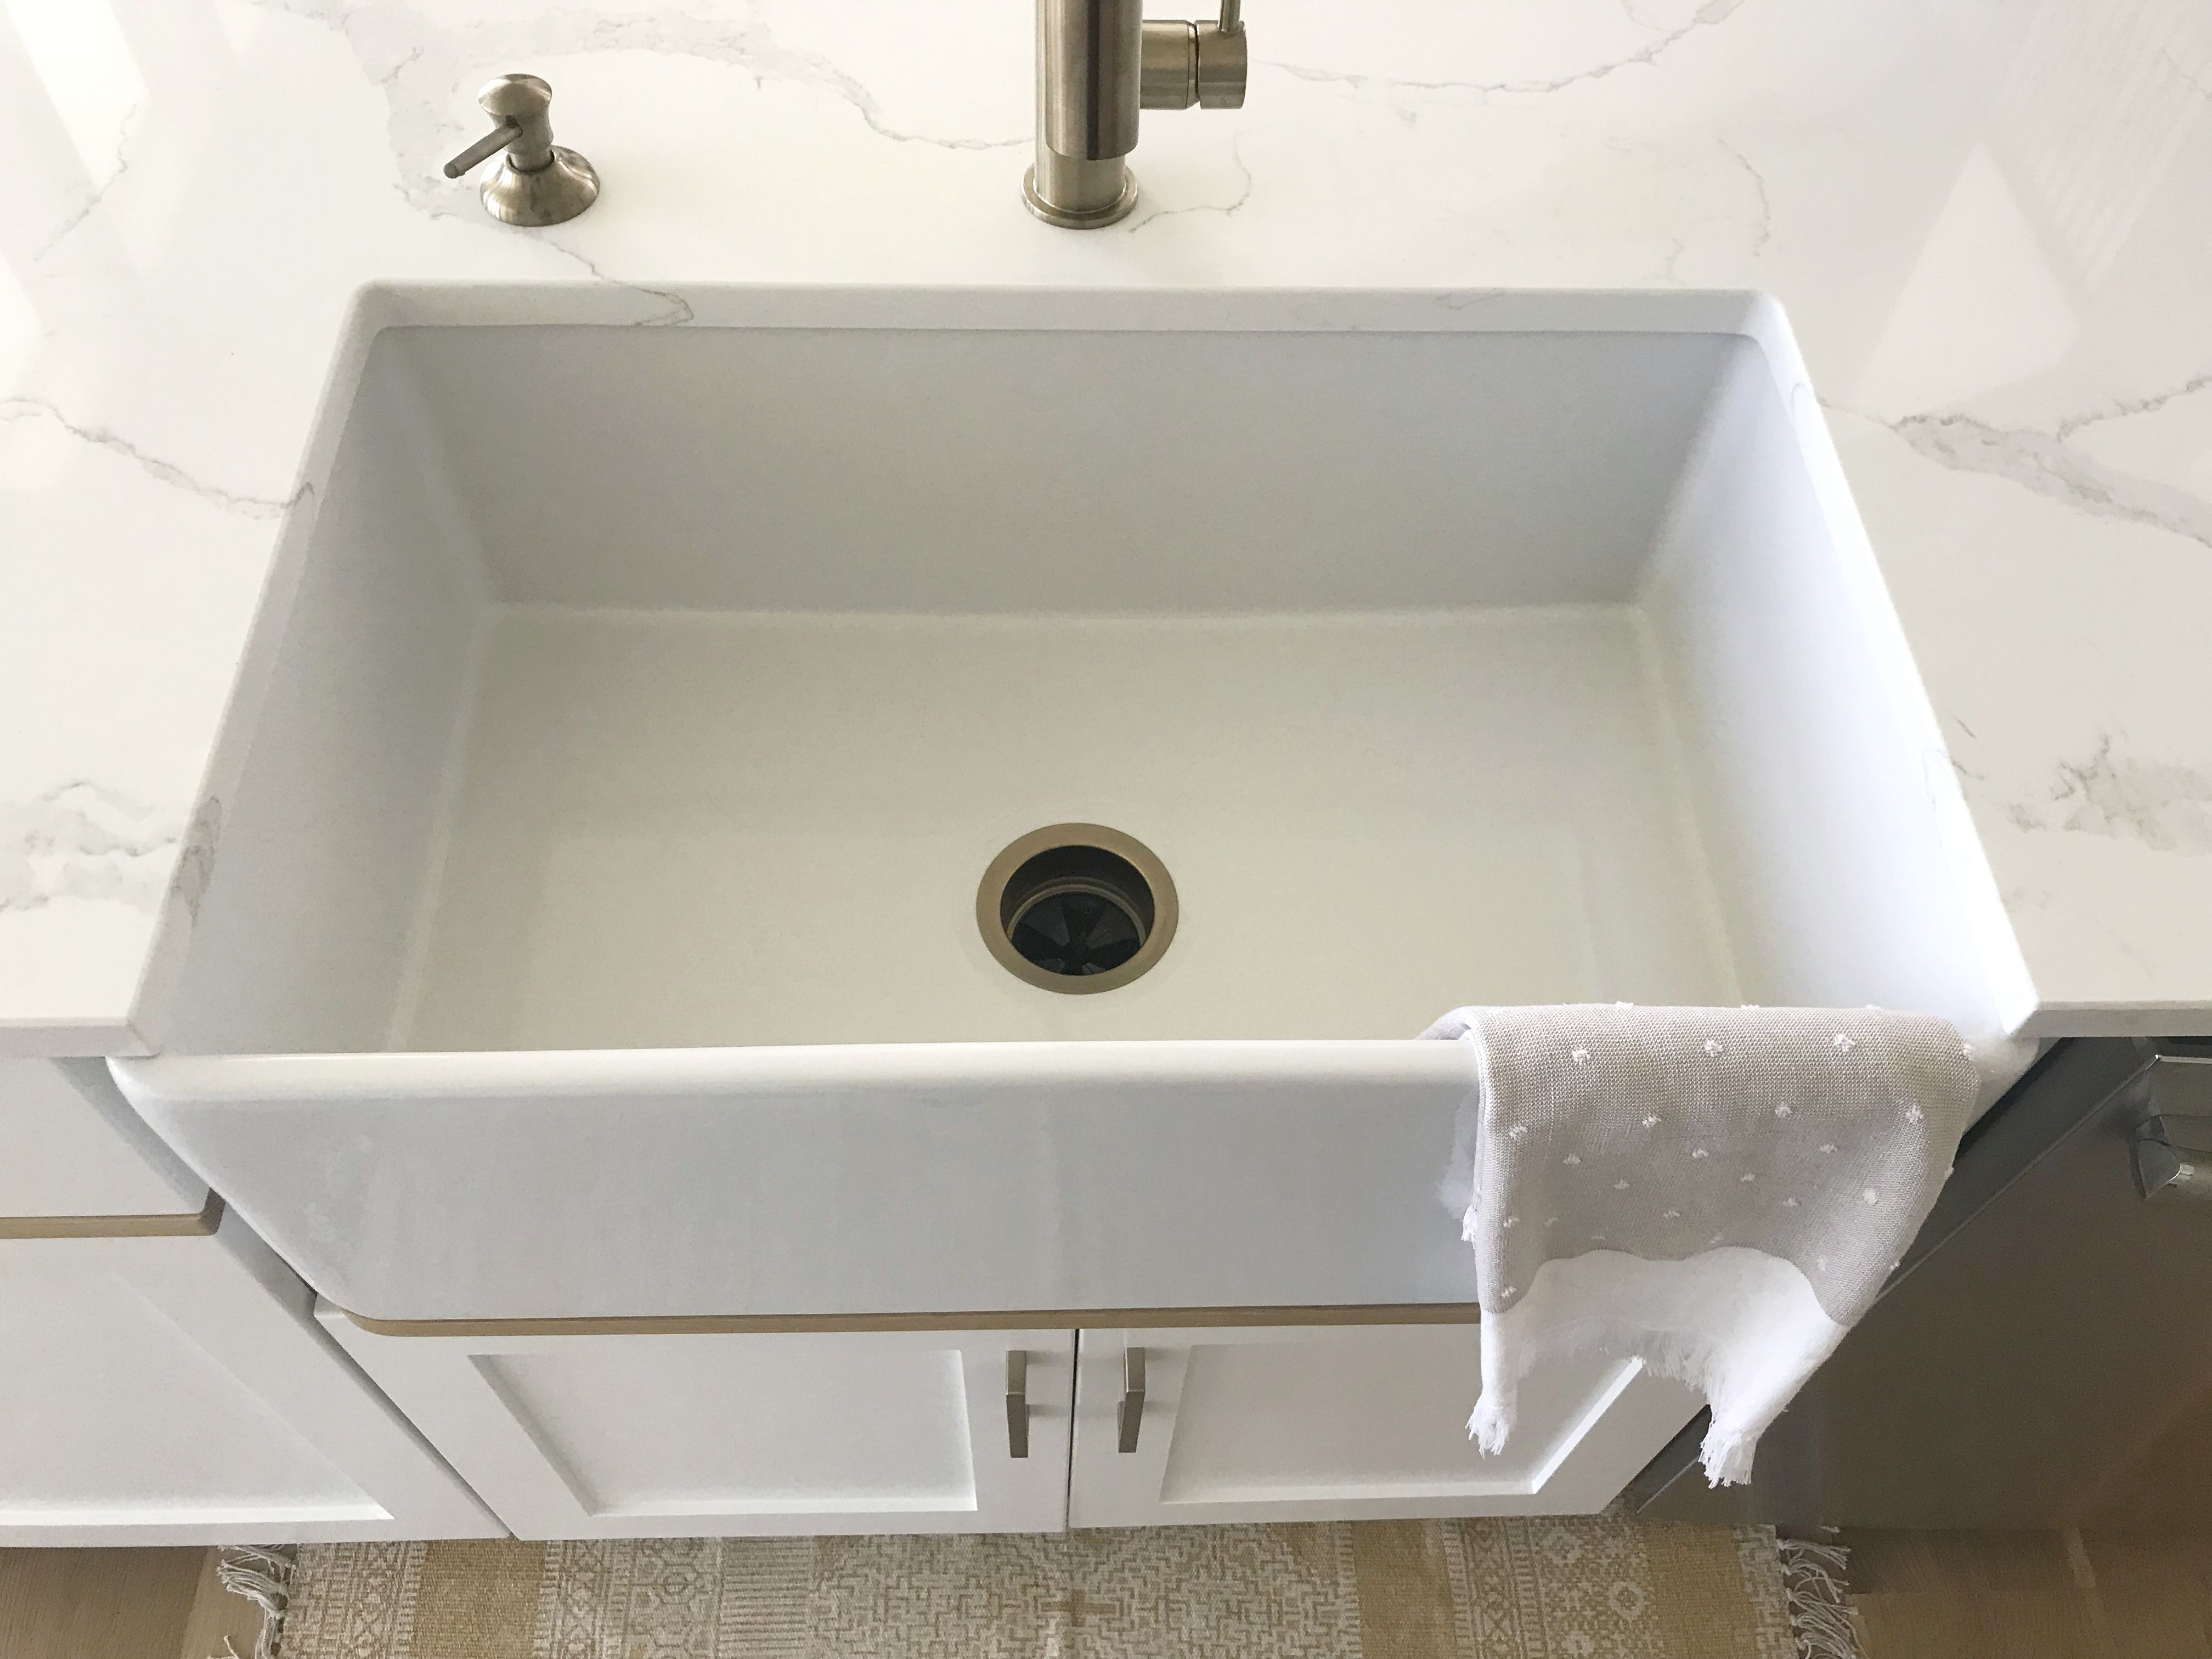 Things Nobody Tells You About Getting A Farmhouse Sink Farmhouse Sink Installation Farmhouse Sink Farmhouse Kitchen Design